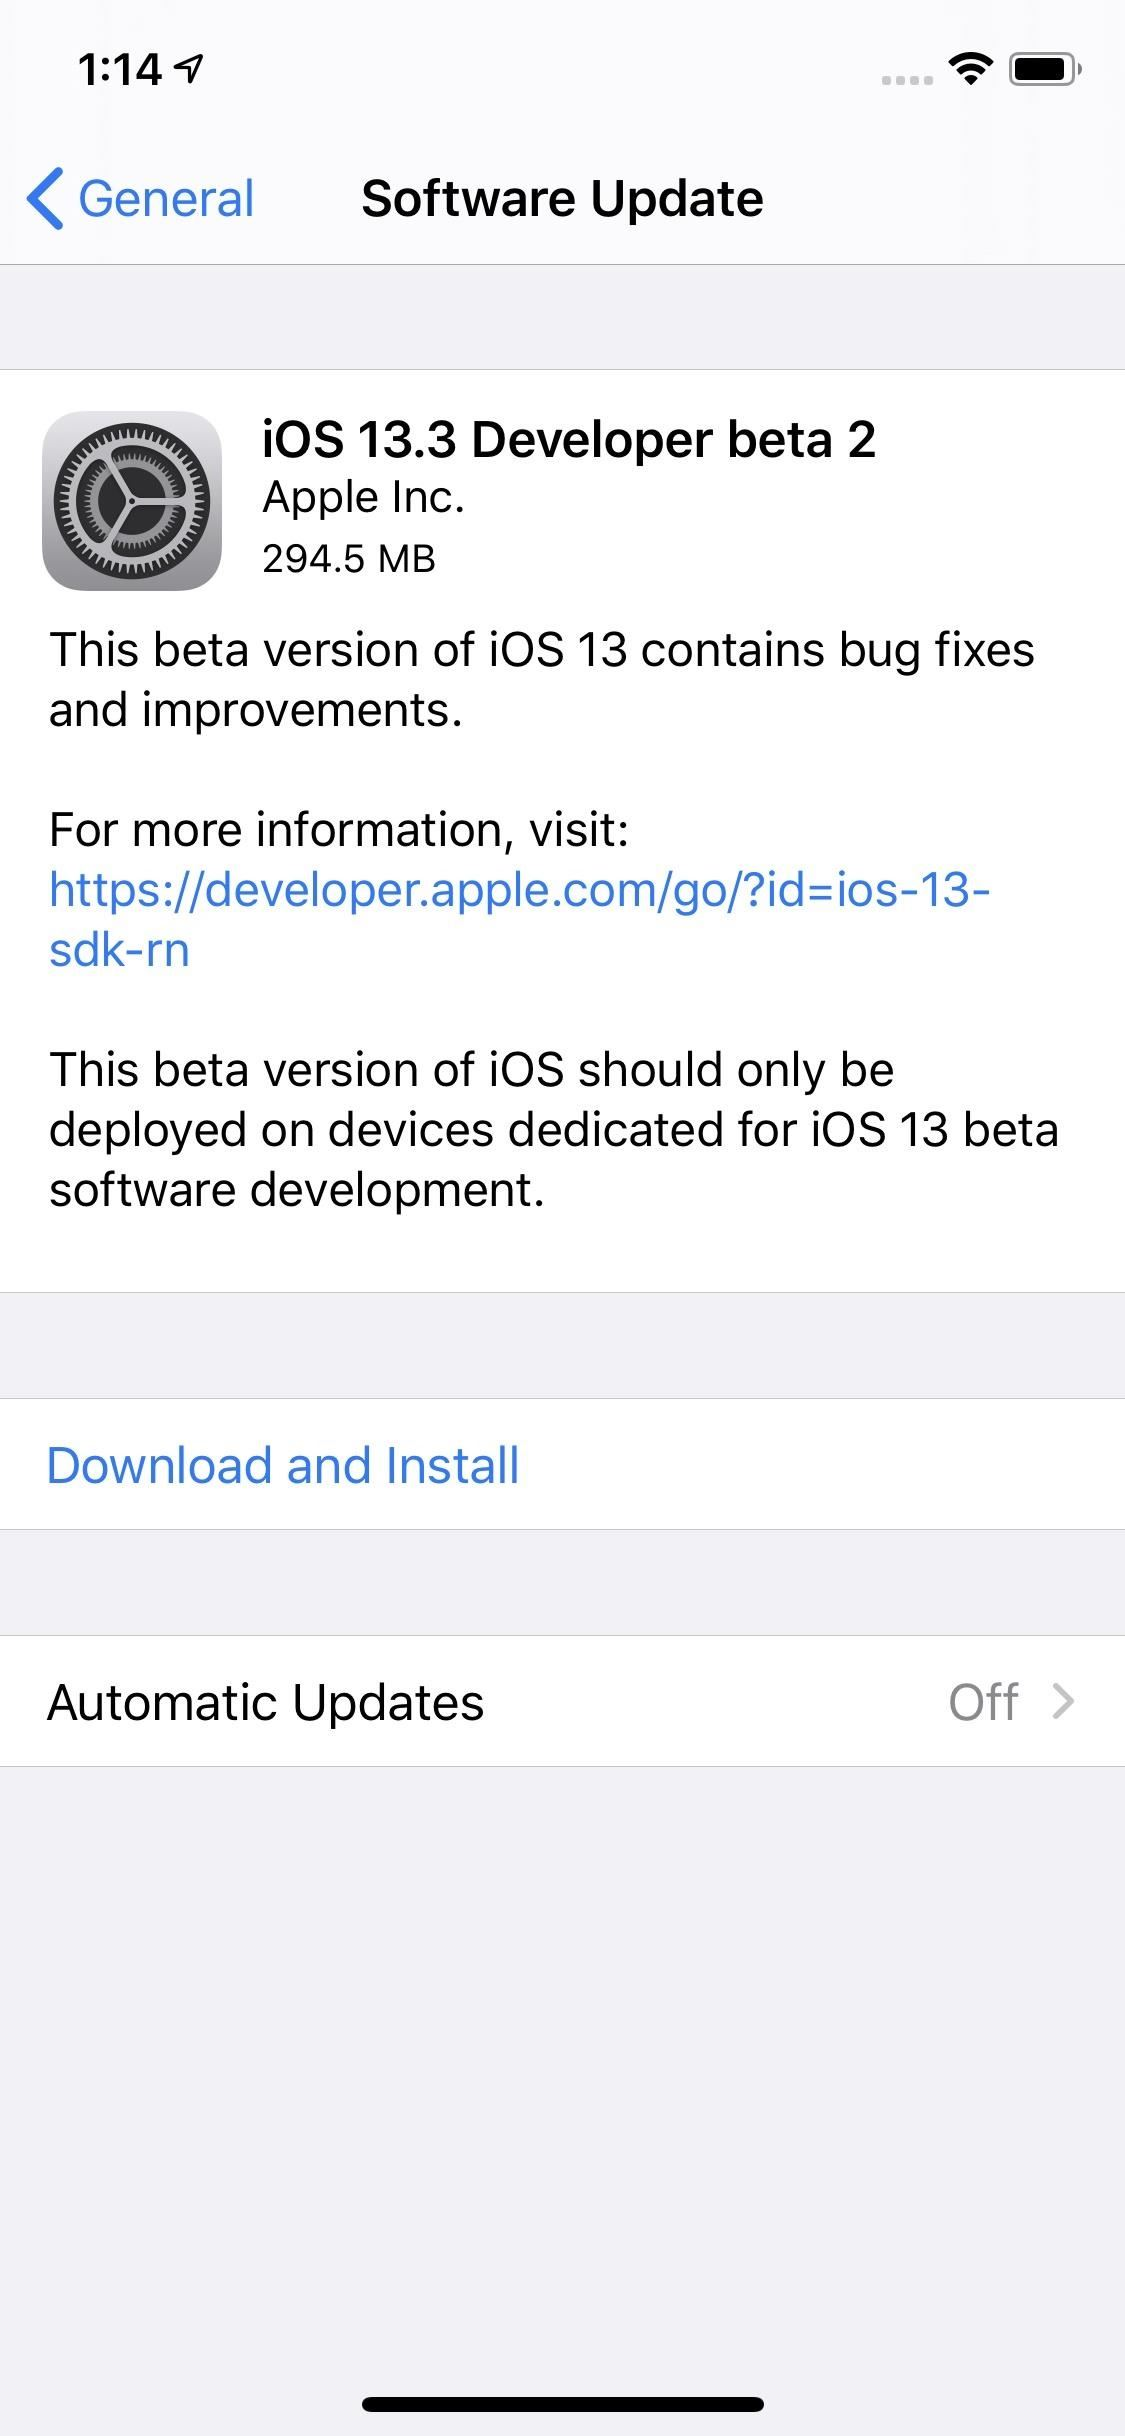 Apple Releases iOS 13.3 Beta 2 for iPhone Developers